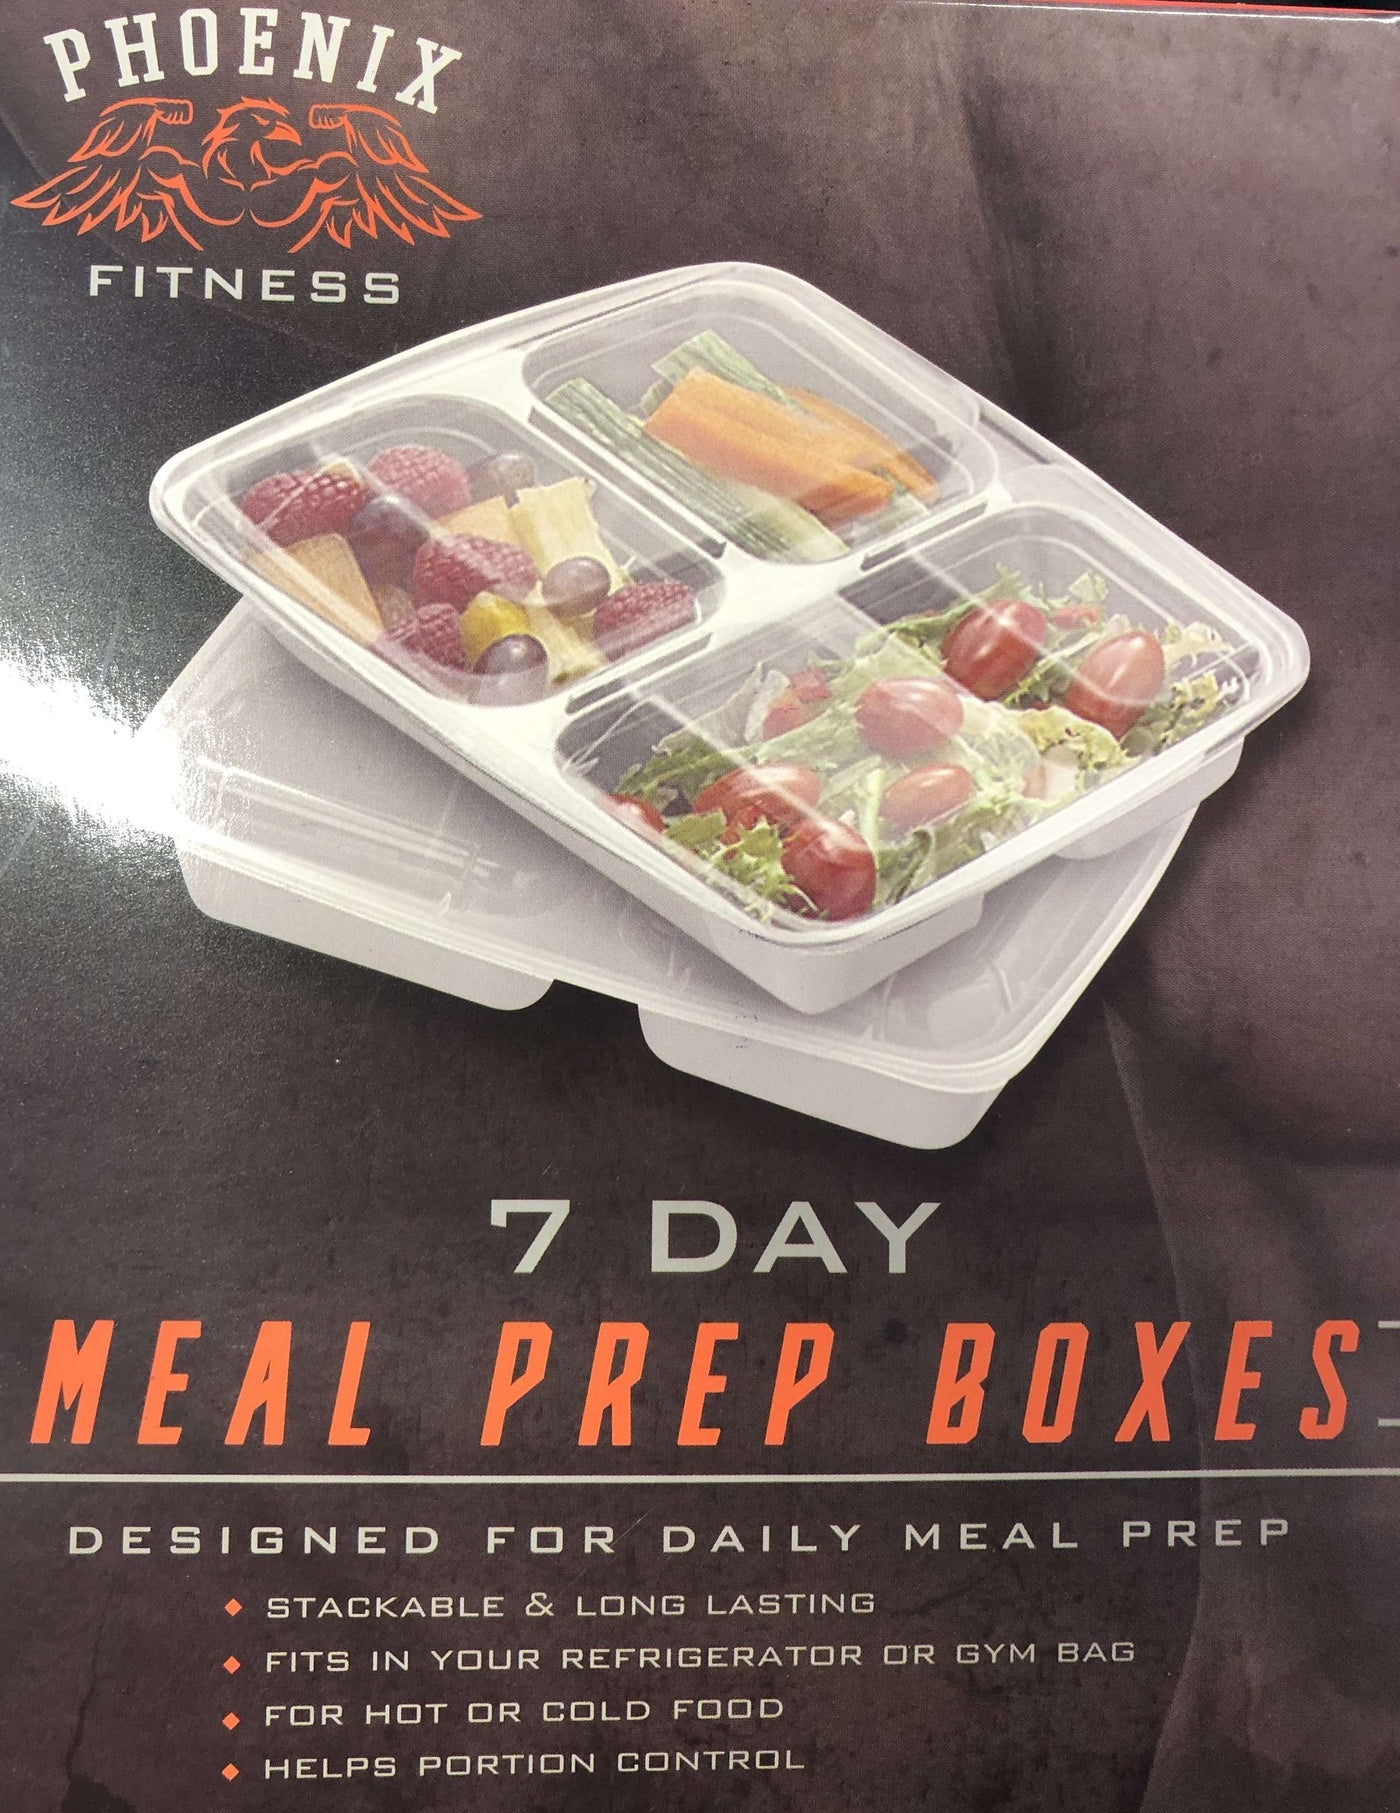 ef61bc3d6b96 Phoenix Fitness Meal Prep Boxes 7 Pack